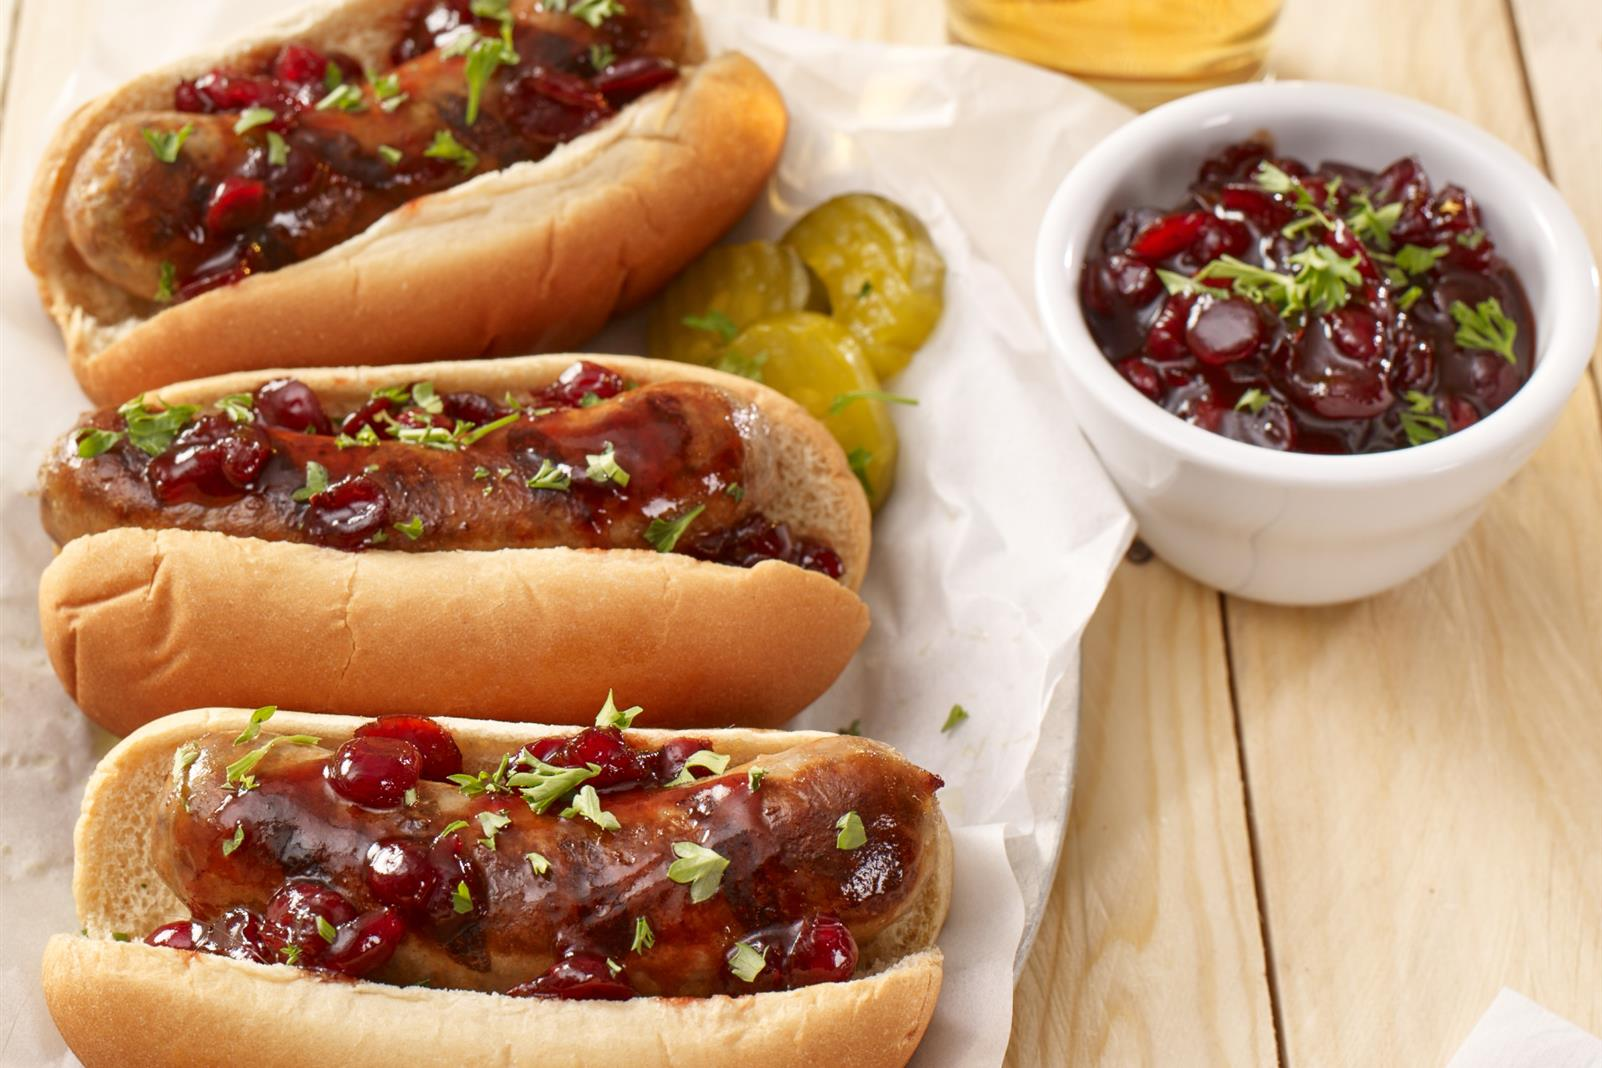 Sausages with Chunky Cranberry-Beer Topping